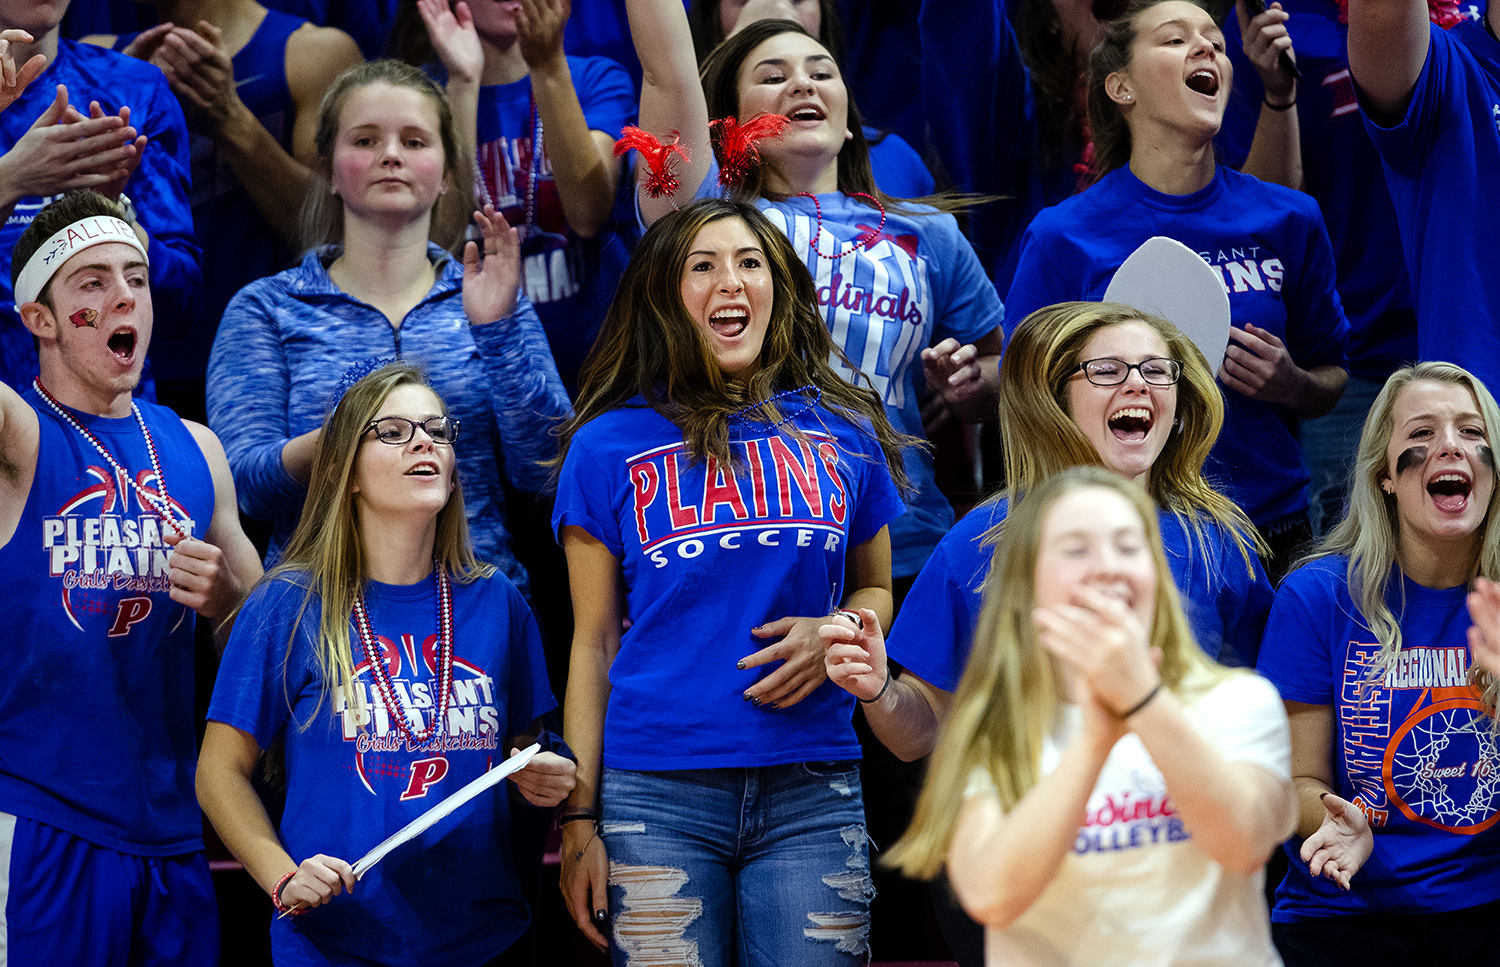 Pleasant Plains fans celebrate a point against Galena during the IHSA Class 2A Volleyball championship at Redbird Arena in Normal Saturday, Nov. 10, 2018. [Ted Schurter/The State Journal-Register]